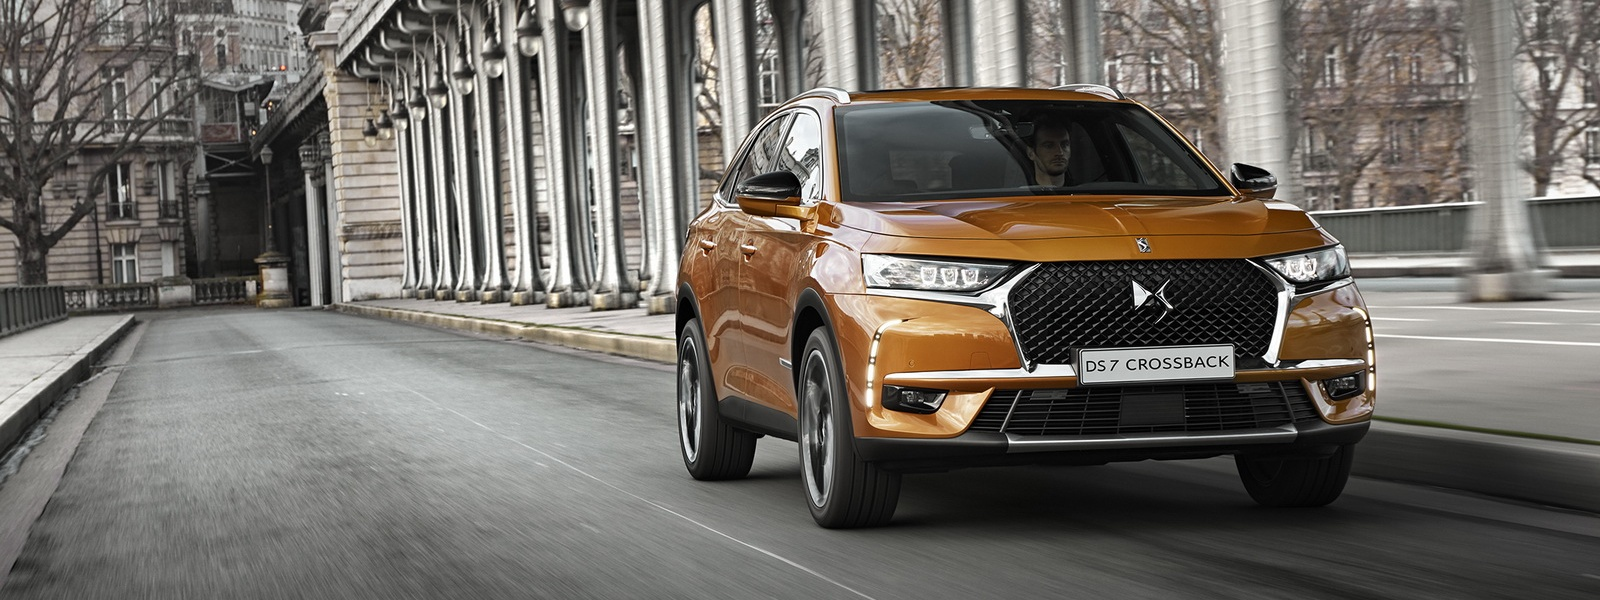 DS7-Crossback-17.jpg